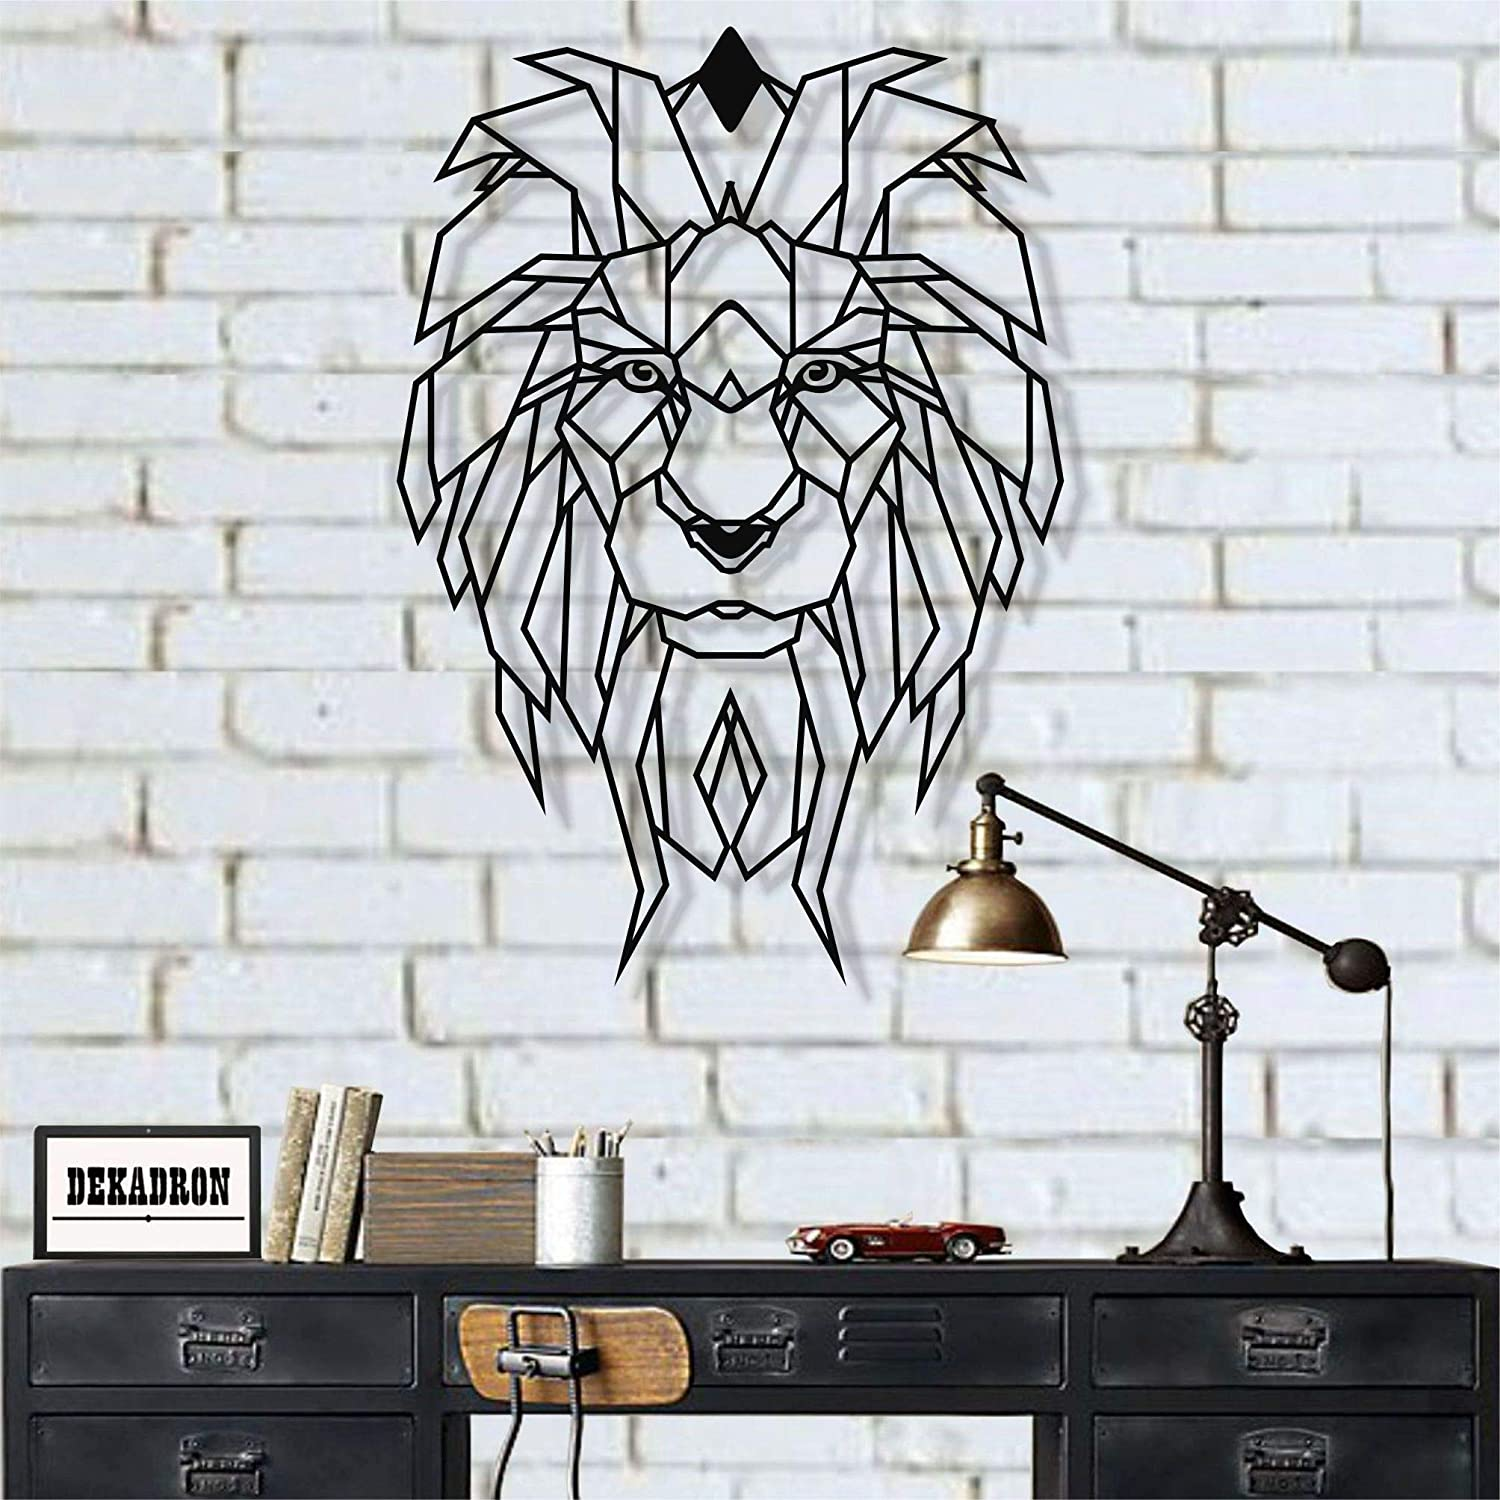 The Wall Decor For Office Trend This Year @house2homegoods.net